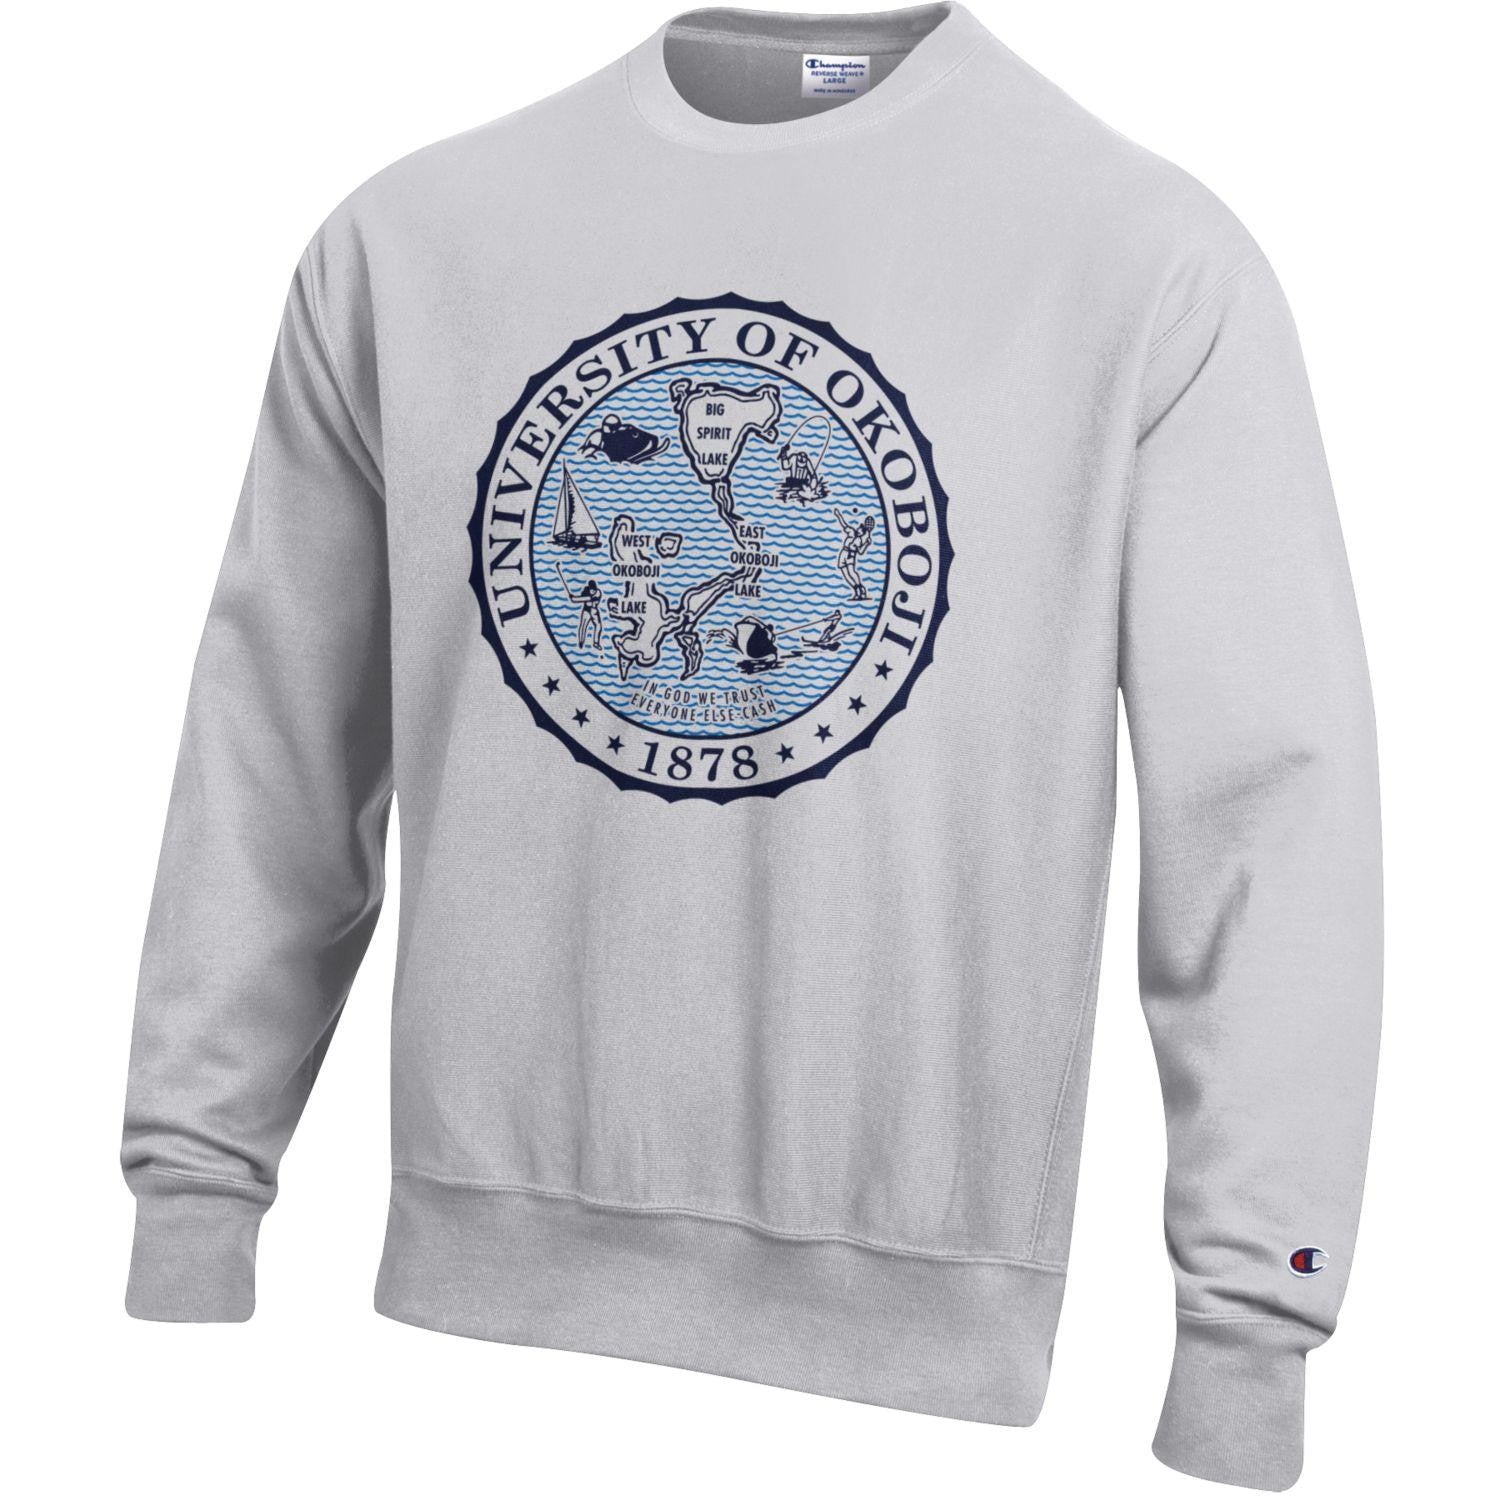 669d5af59 Crew Neck Sweatshirts - The Three Sons